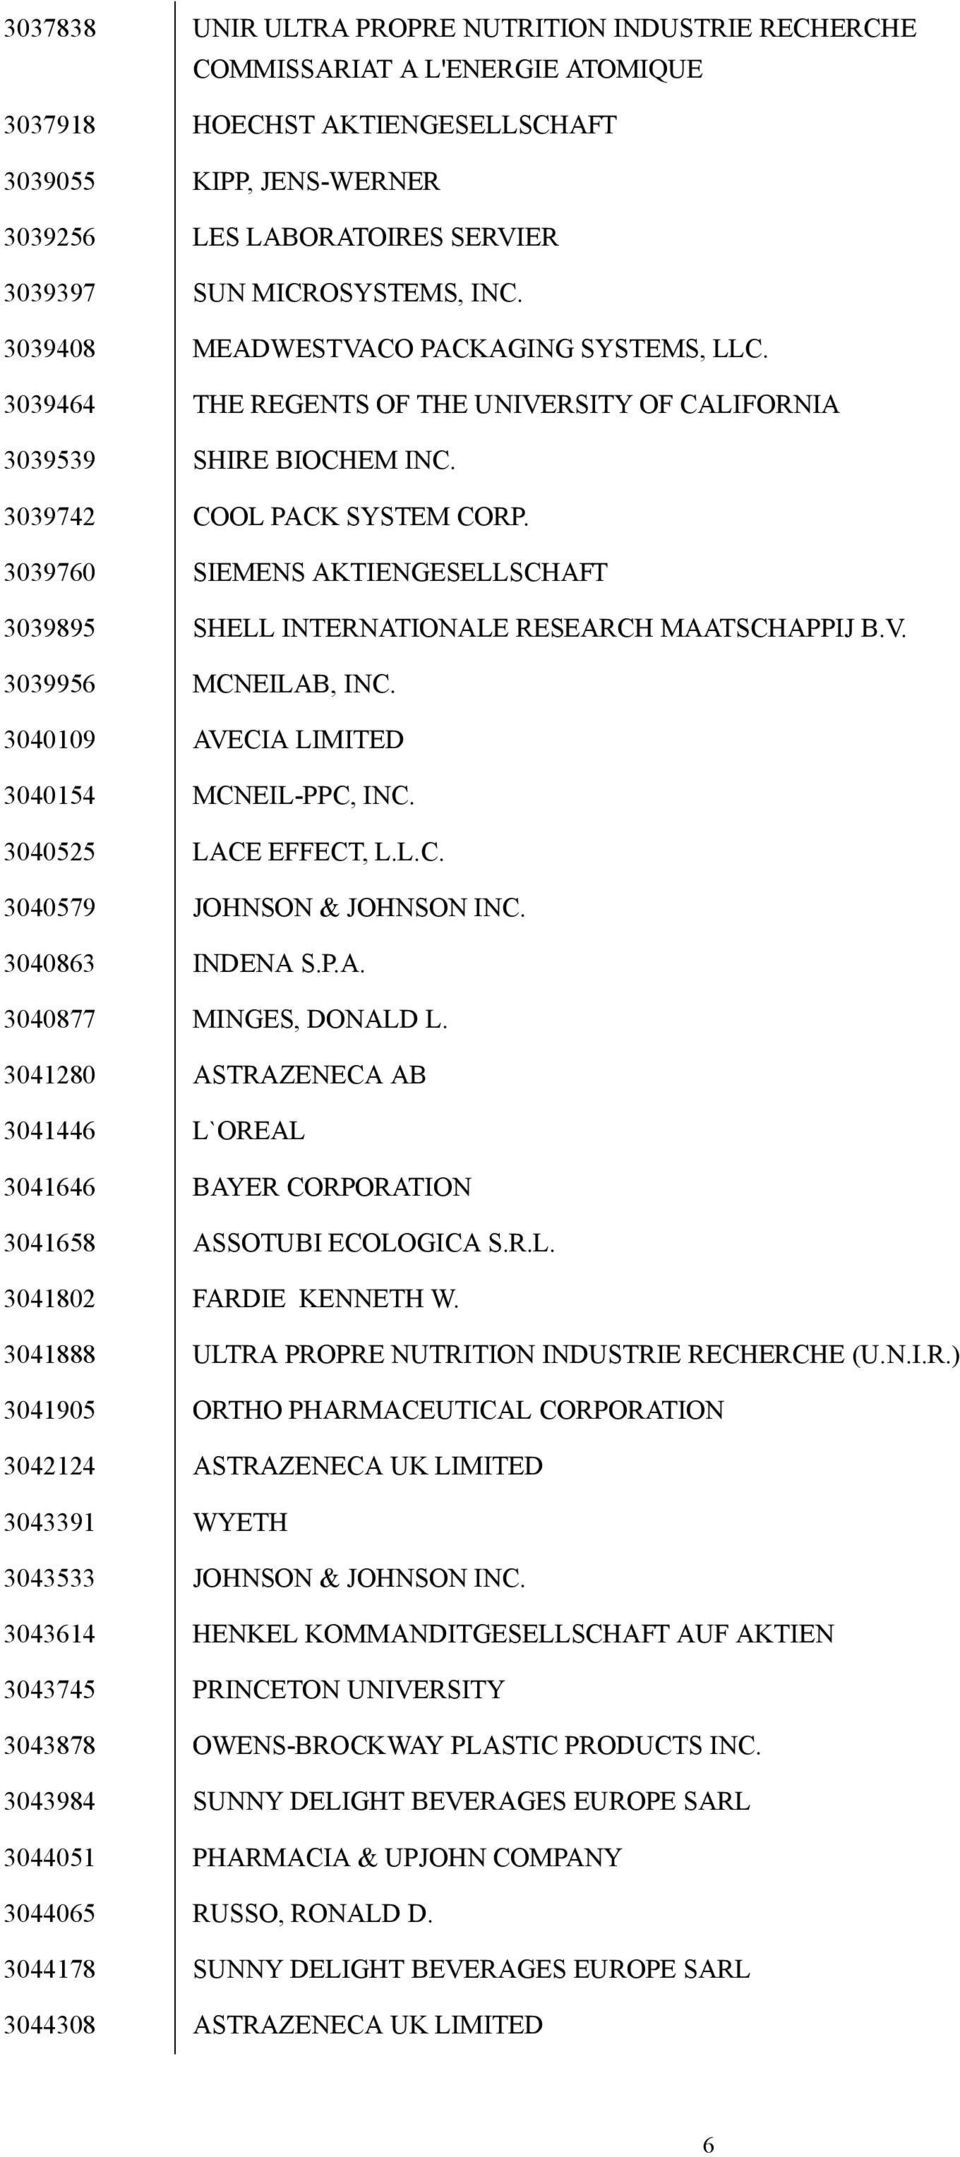 3039760 SIEMENS AKTIENGESELLSCHAFT 3039895 SHELL INTERNATIONALE RESEARCH MAATSCHAPPIJ B.V. 3039956 MCNEILAB, INC. 3040109 AVECIA LIMITED 3040154 MCNEIL-PPC, INC. 3040525 LACE EFFECT, L.L.C. 3040579 JOHNSON & JOHNSON INC.